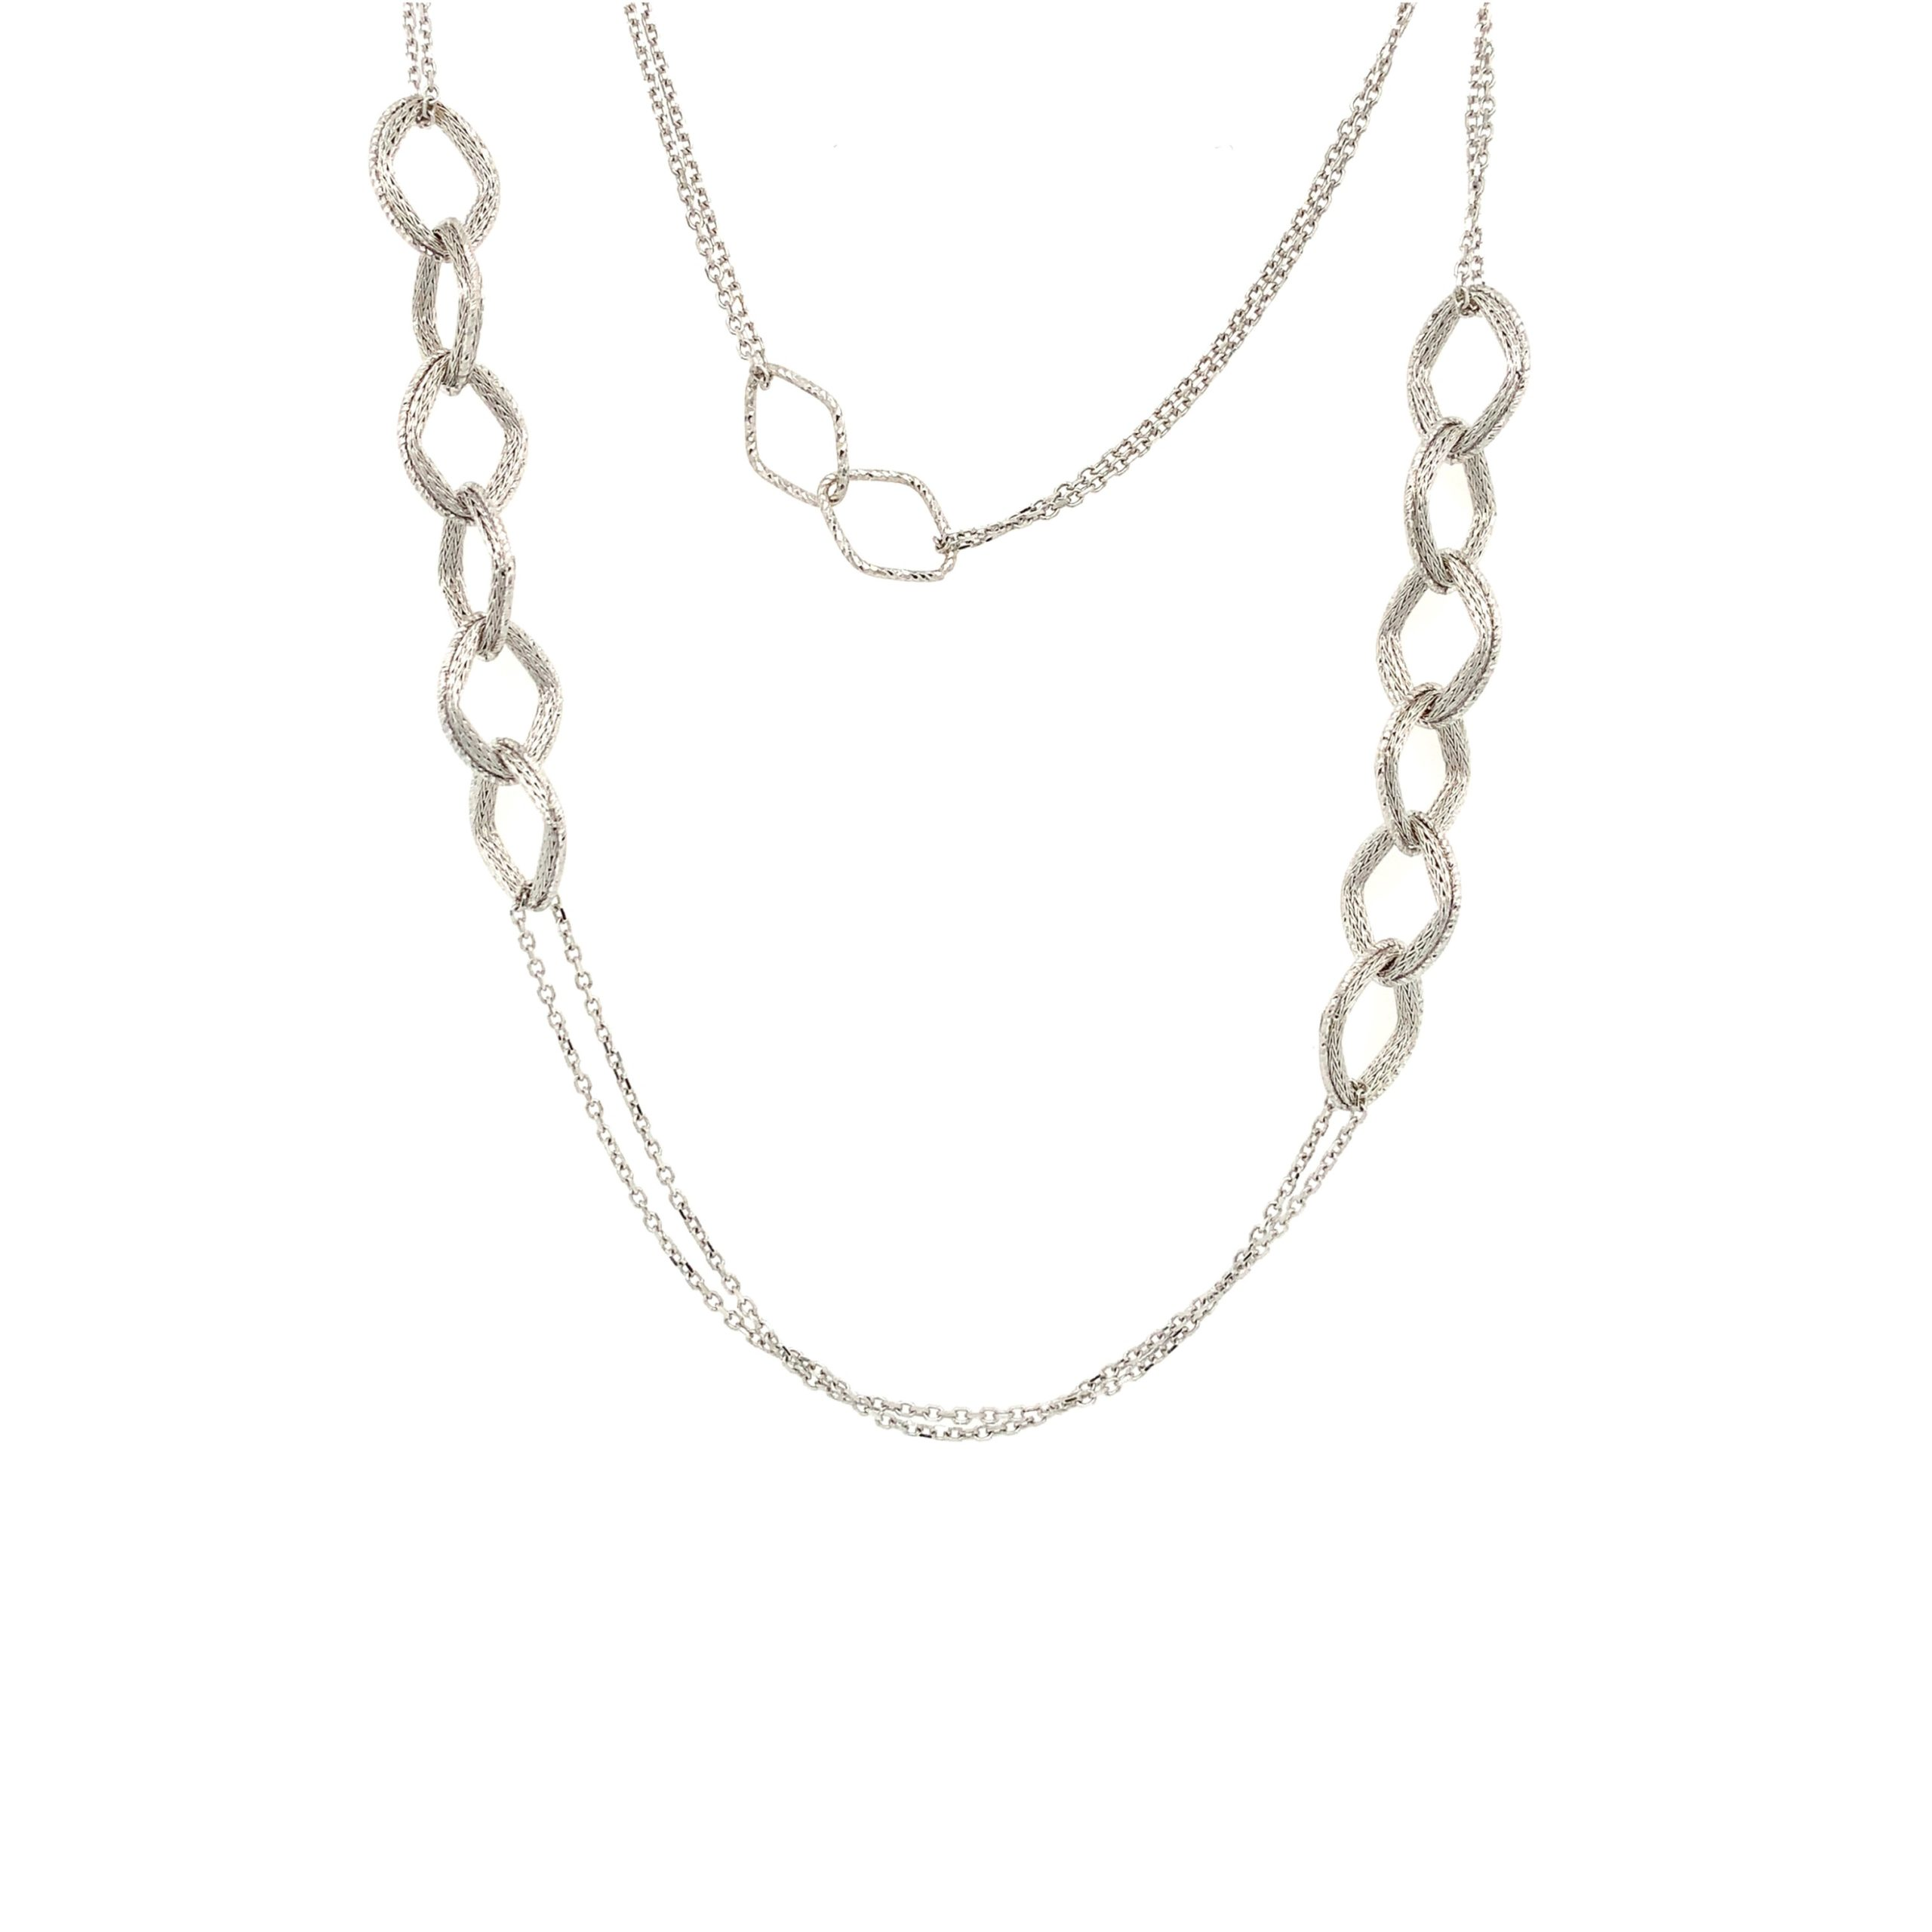 White Gold Textured Necklace